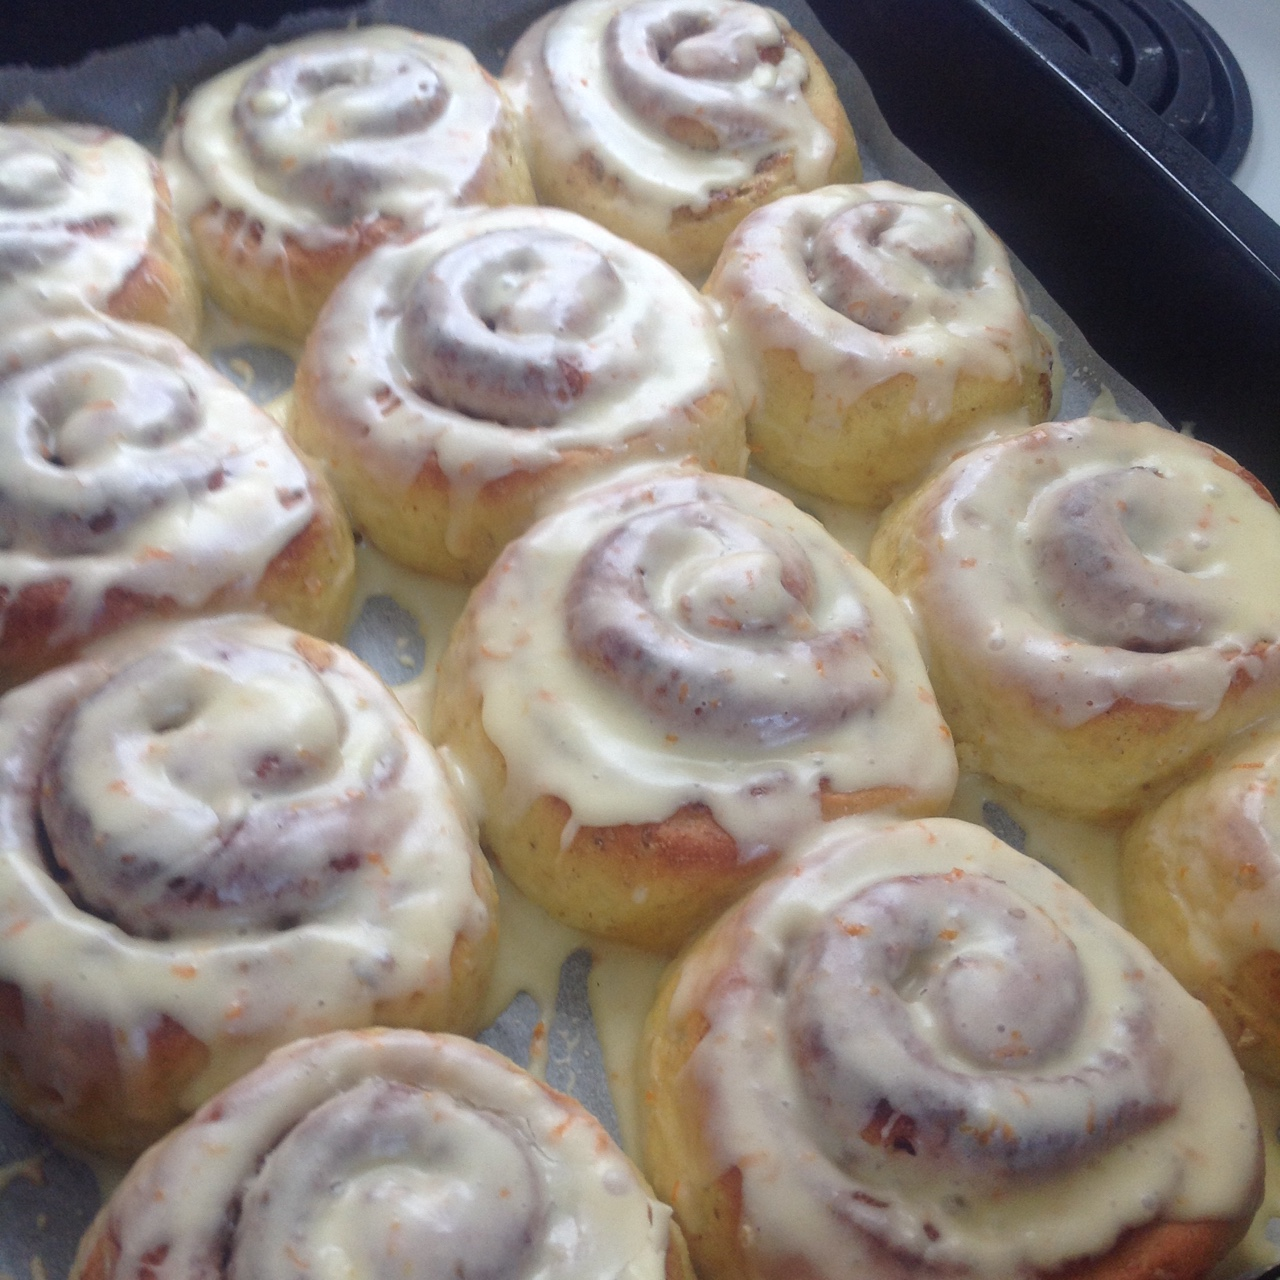 Maryam's sunshine cinnamon rolls recipe